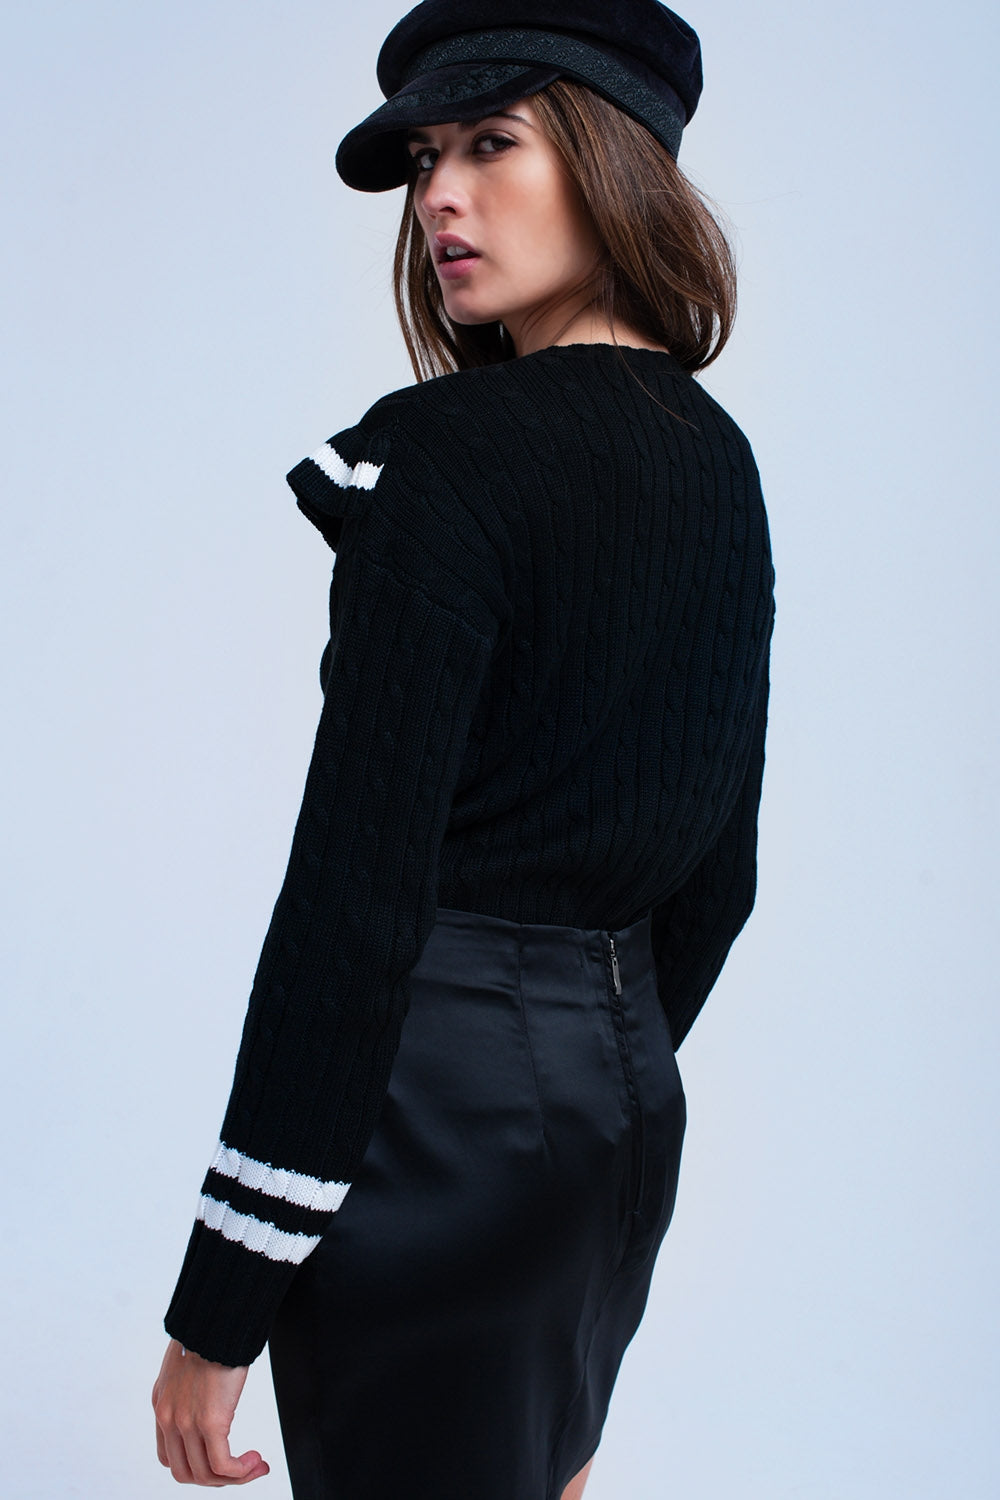 Cable Knit Black Sweater With Ruffles-Women - Apparel - Sweaters - Pull Over-Product Details Cable knit sweater in black with a ruffle detail at the top of the sweater. It has a white stripe in the ruffle, and two white stripes at the end of the long sleeves. It also has crew neck and round hem.-Keyomi-Sook